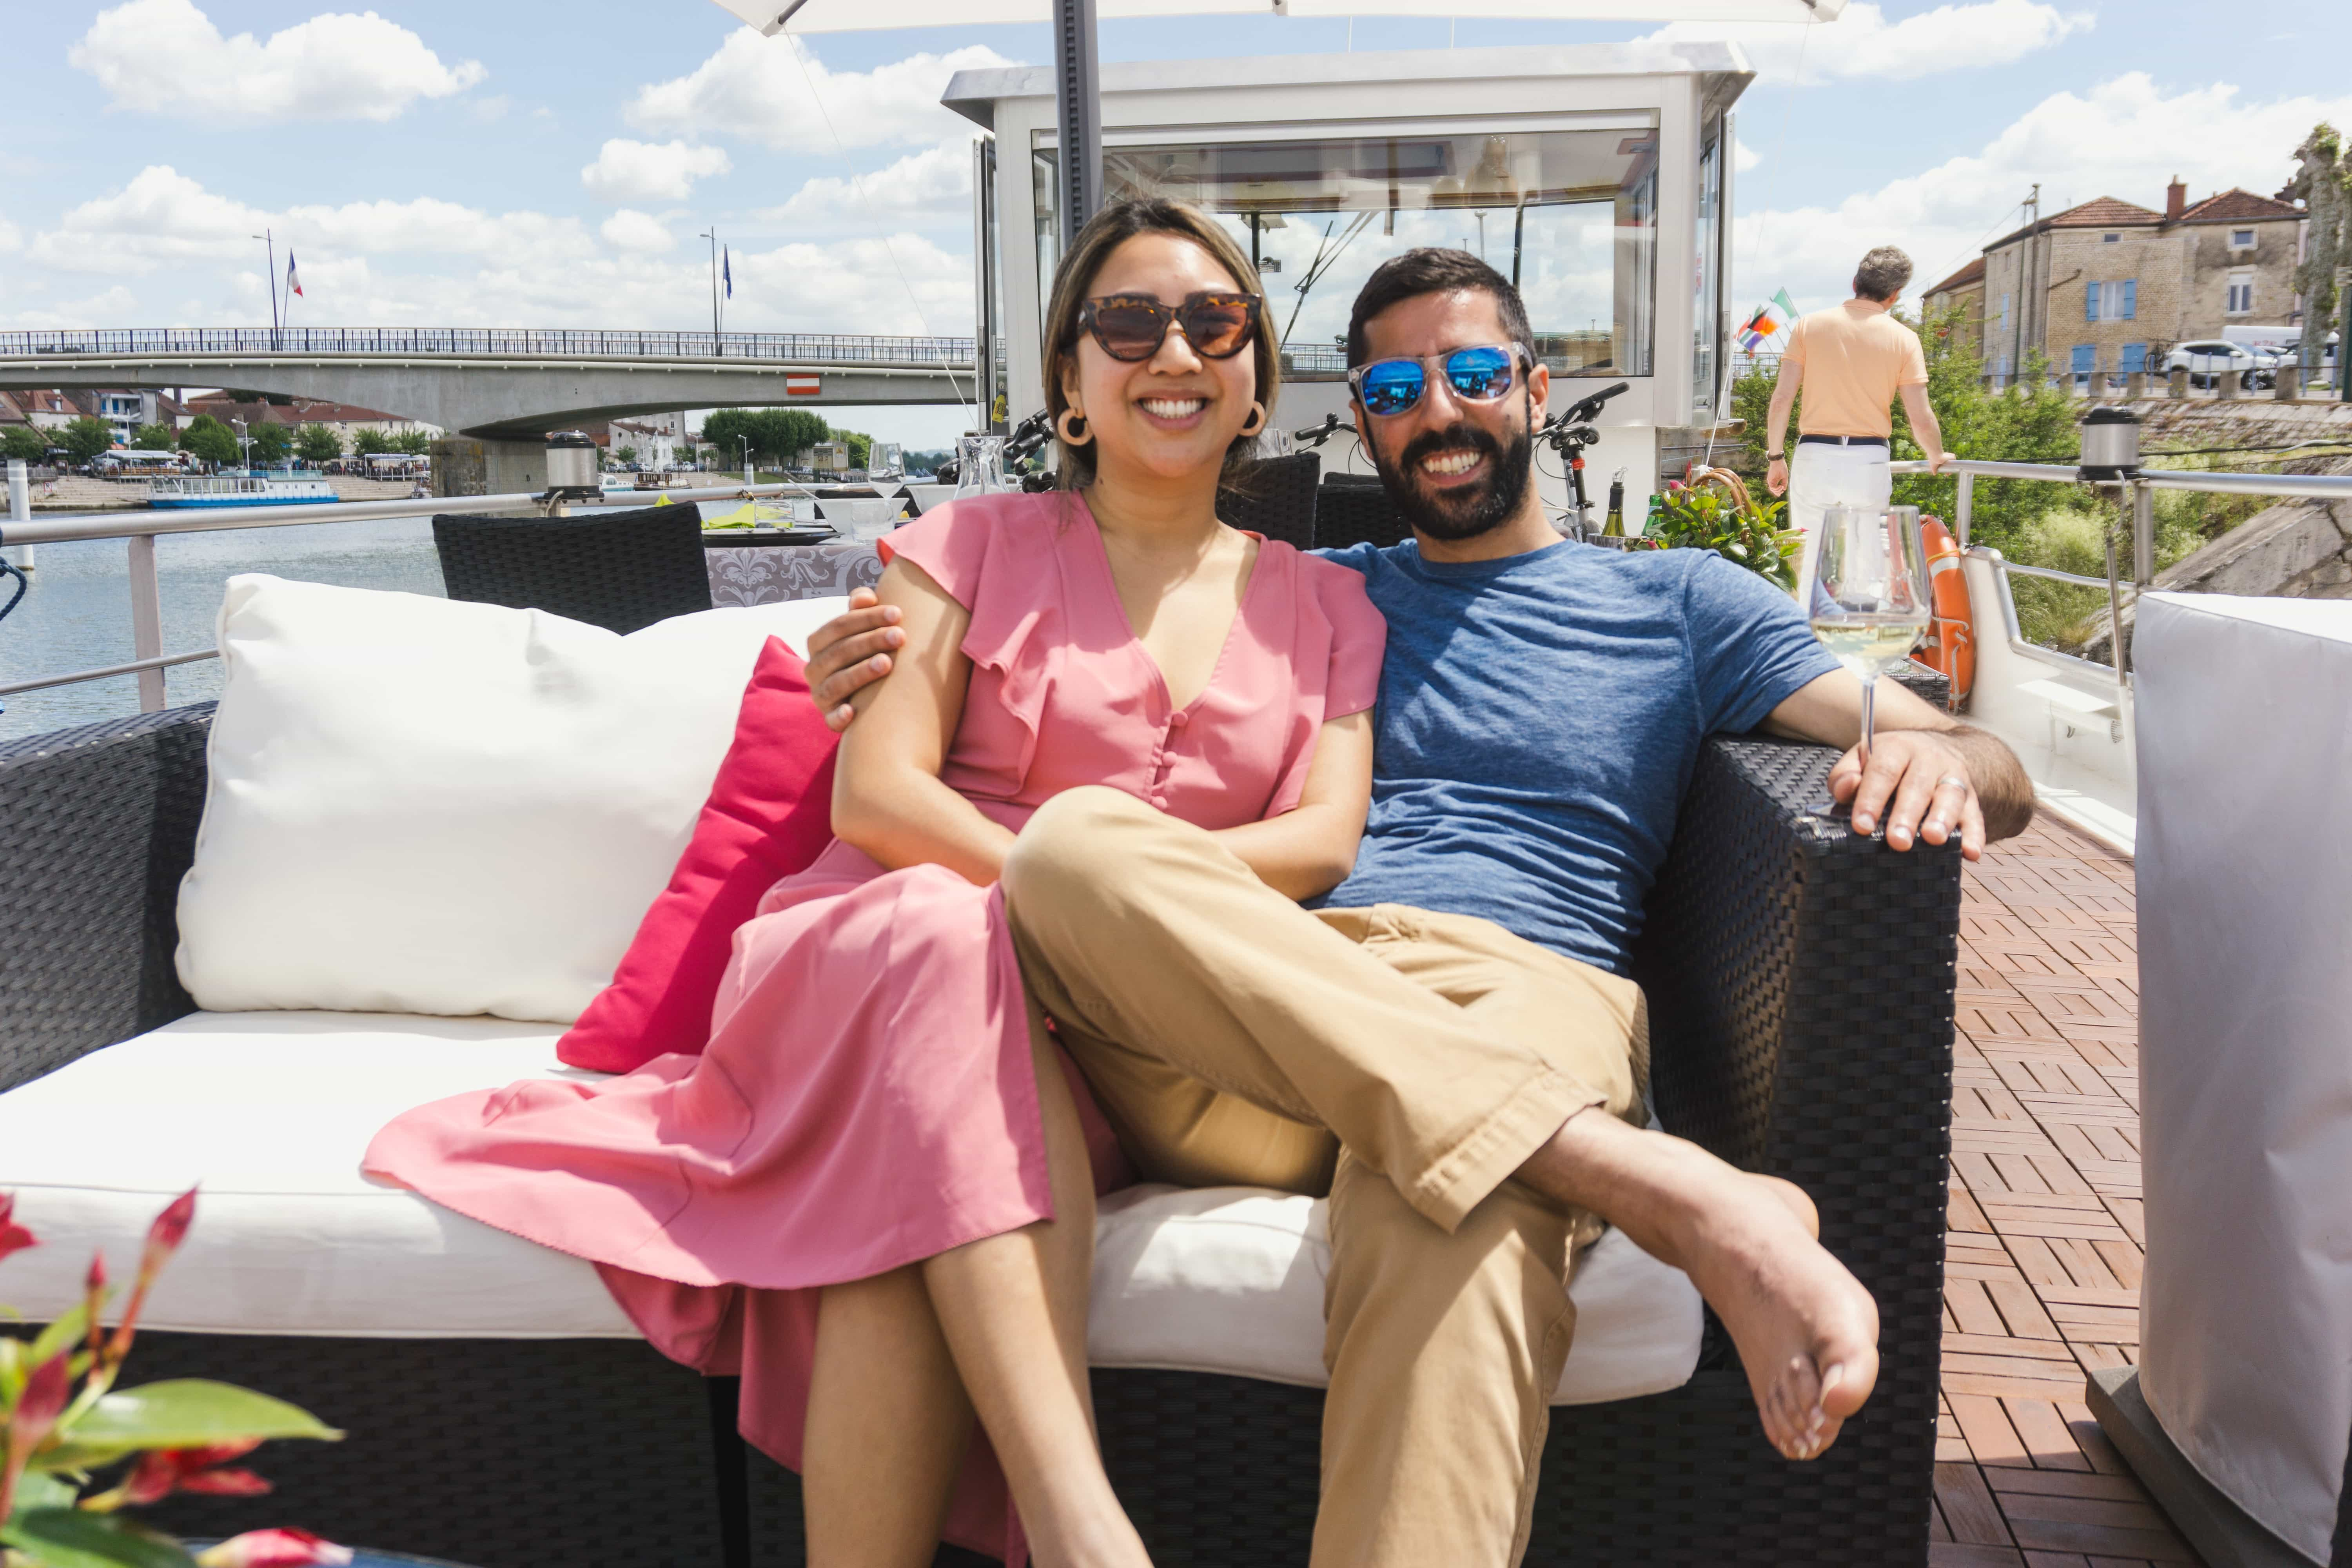 Man and woman enjoying the sun on a French barge cruise